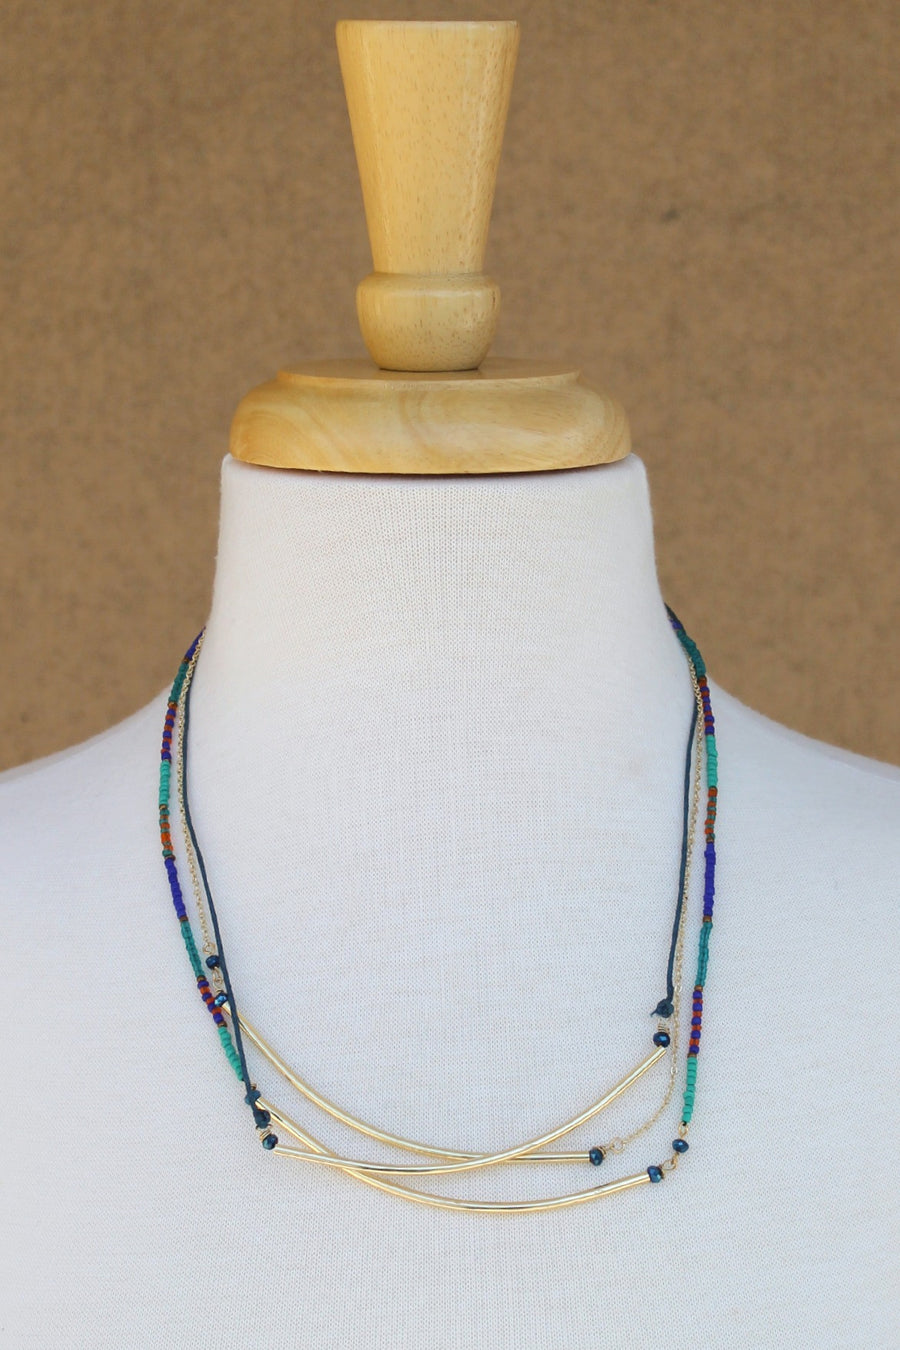 Three Strand Balance Bars and Beads Necklace, Multi